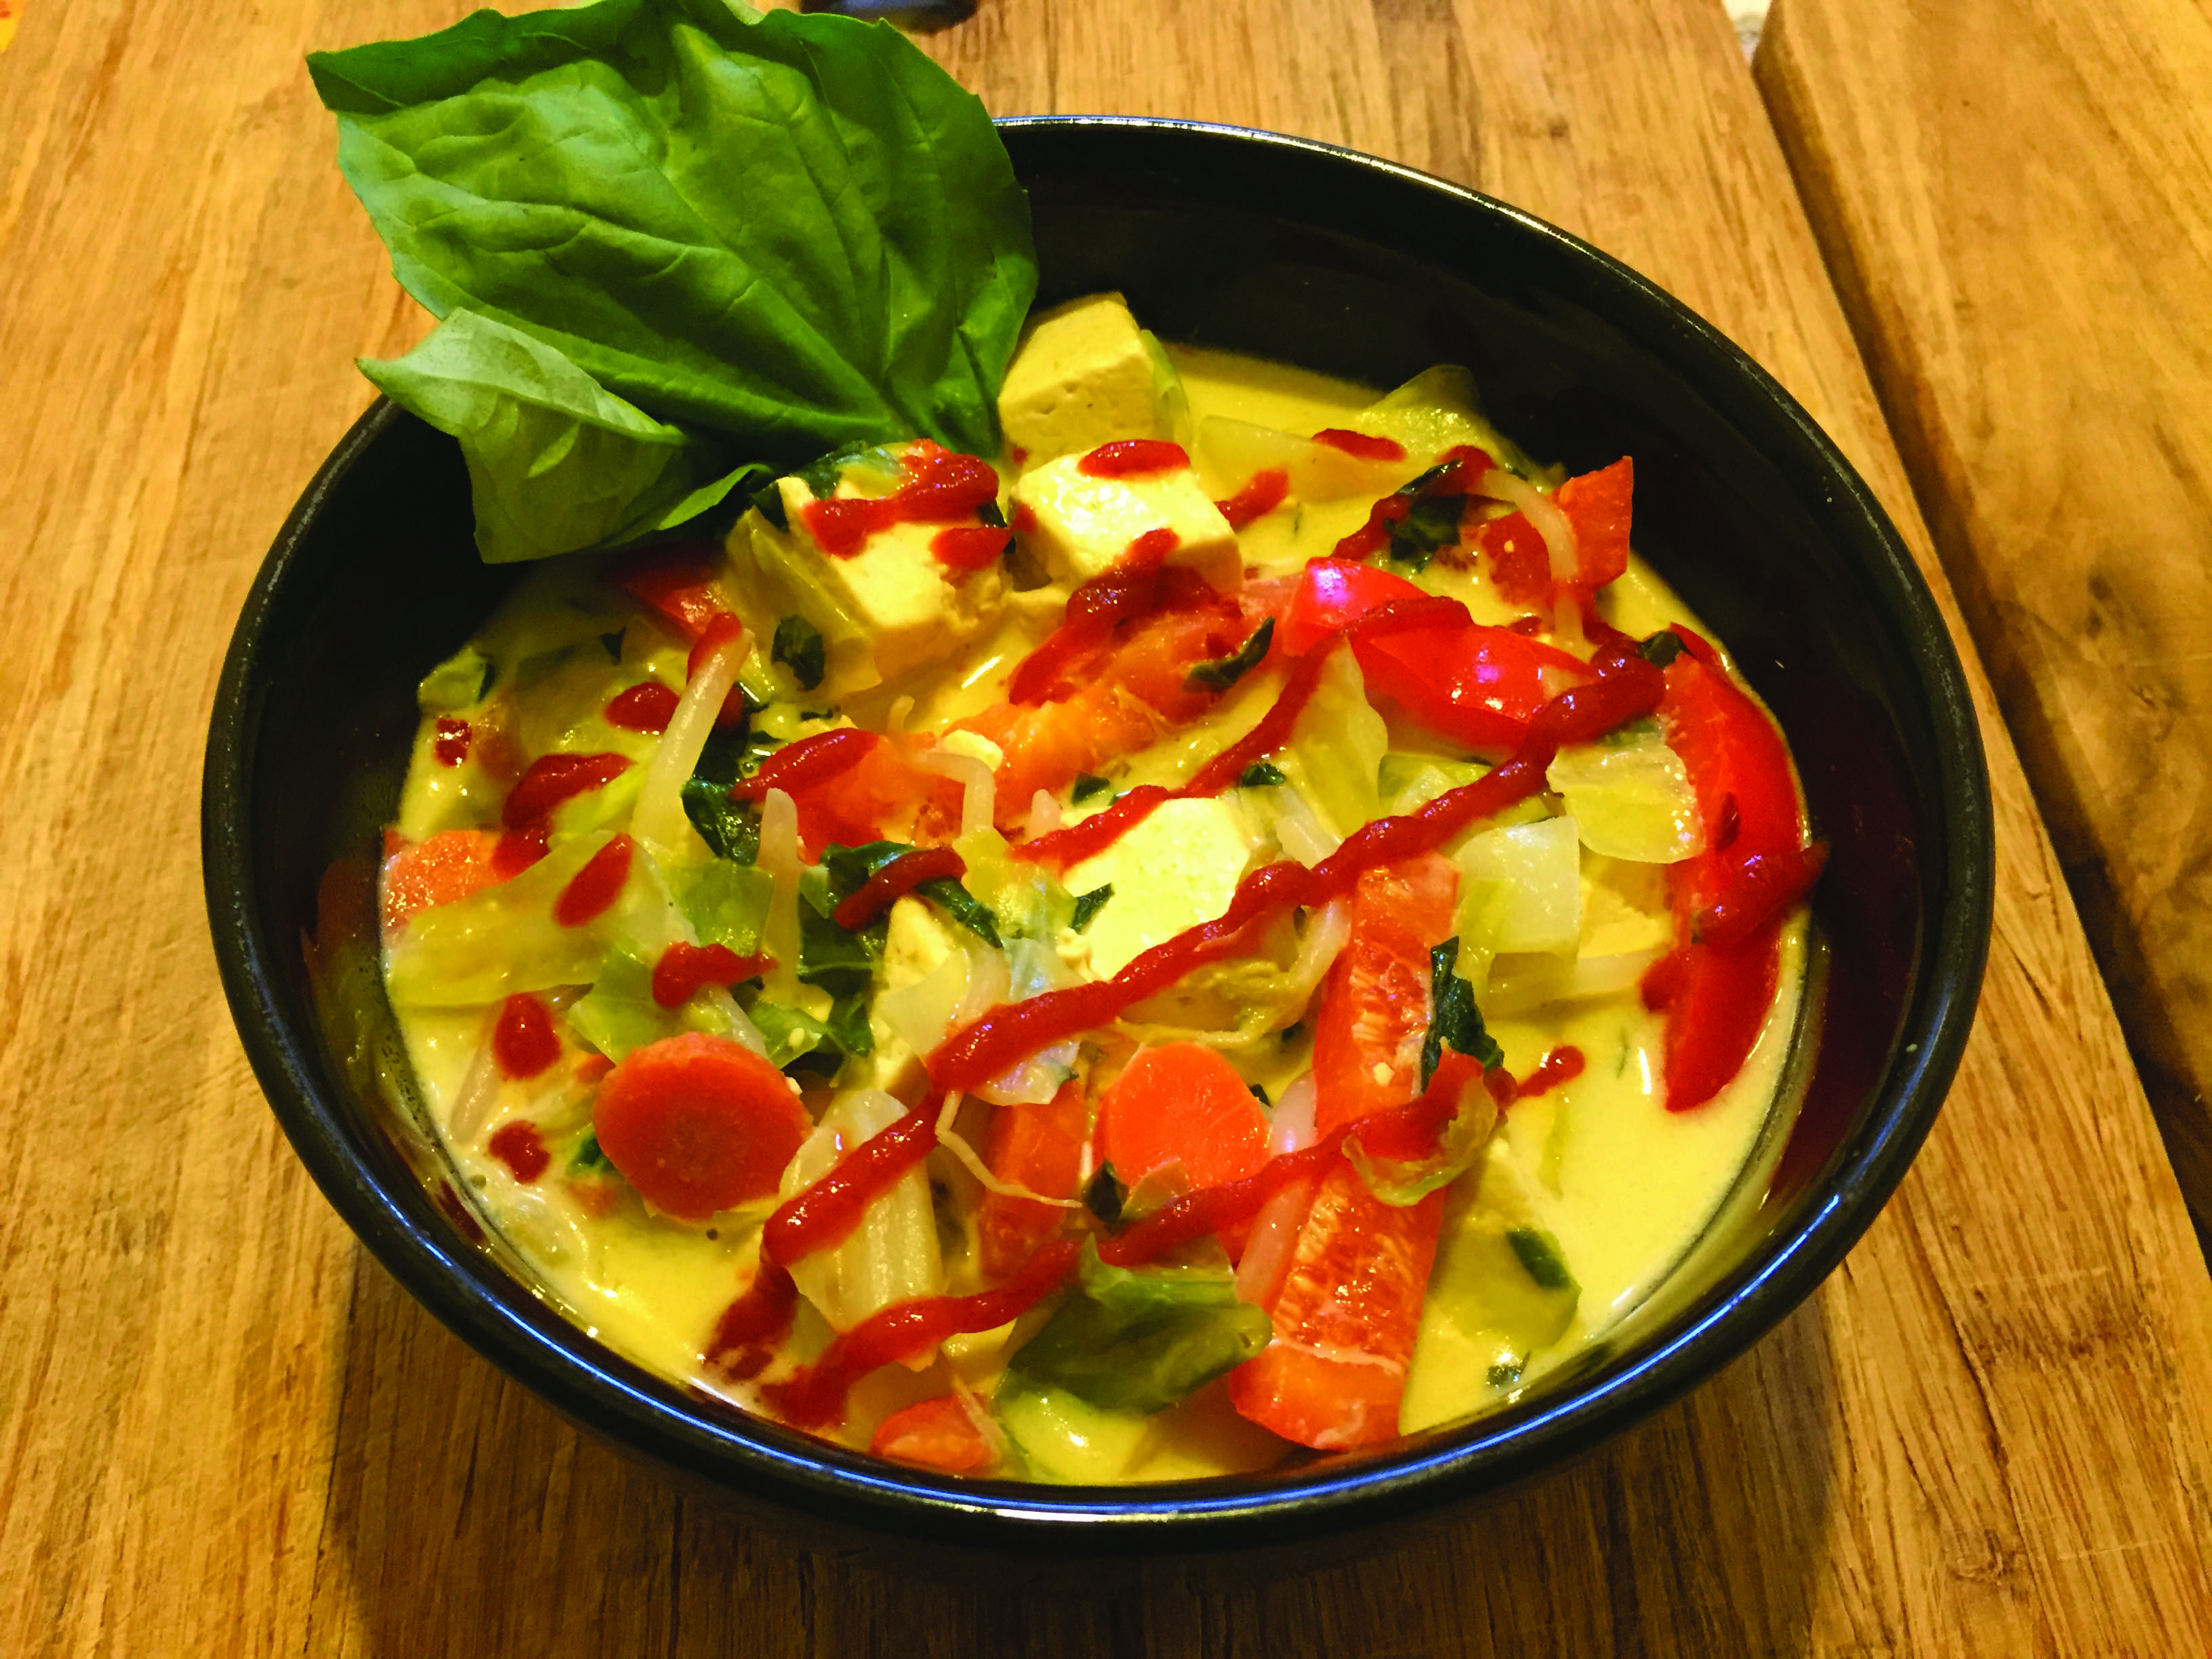 Thai green curry. Photo by Mark Judson